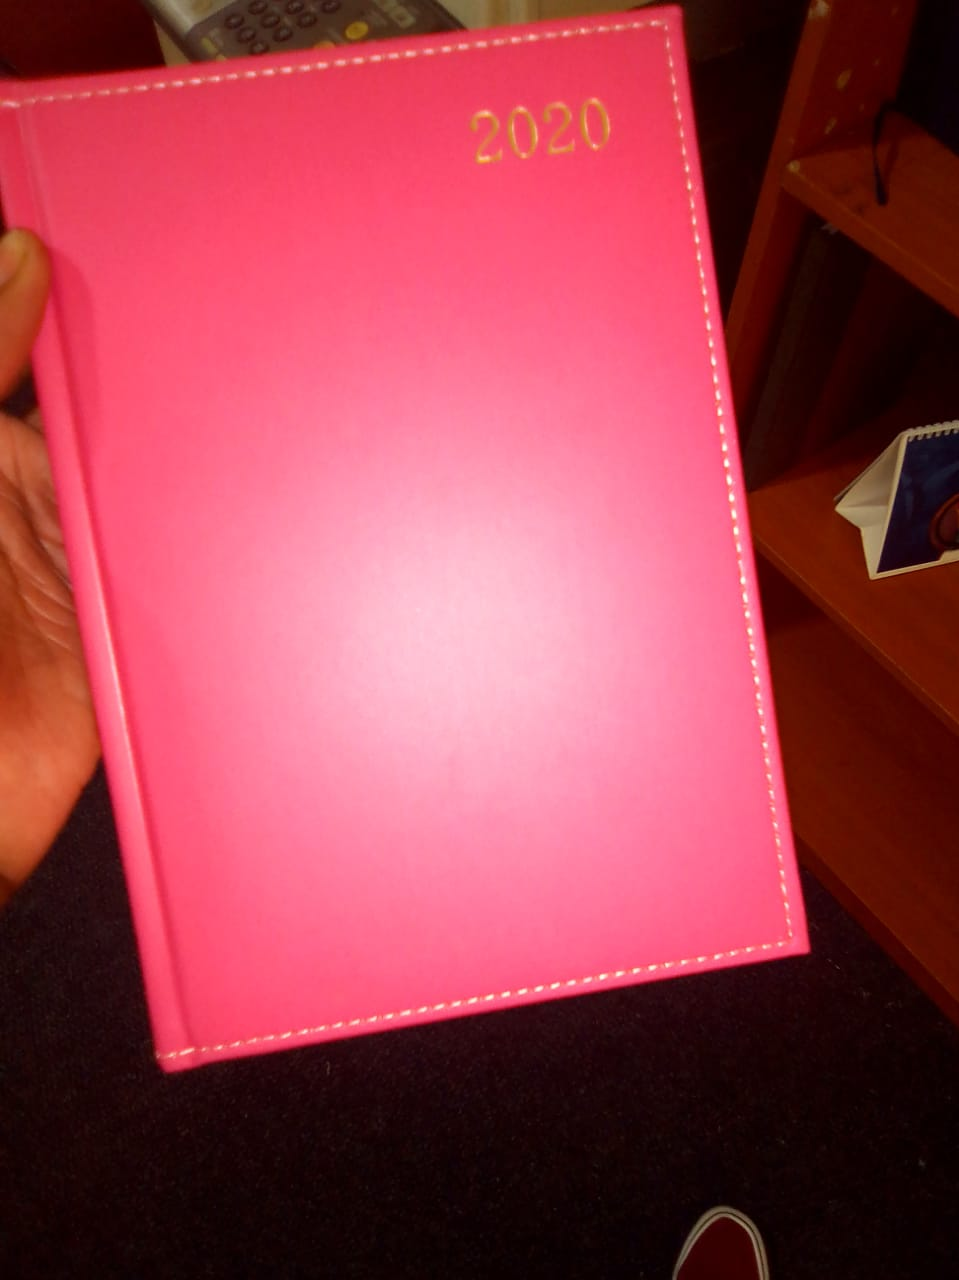 2021 diary supplier johannesburg, south africa